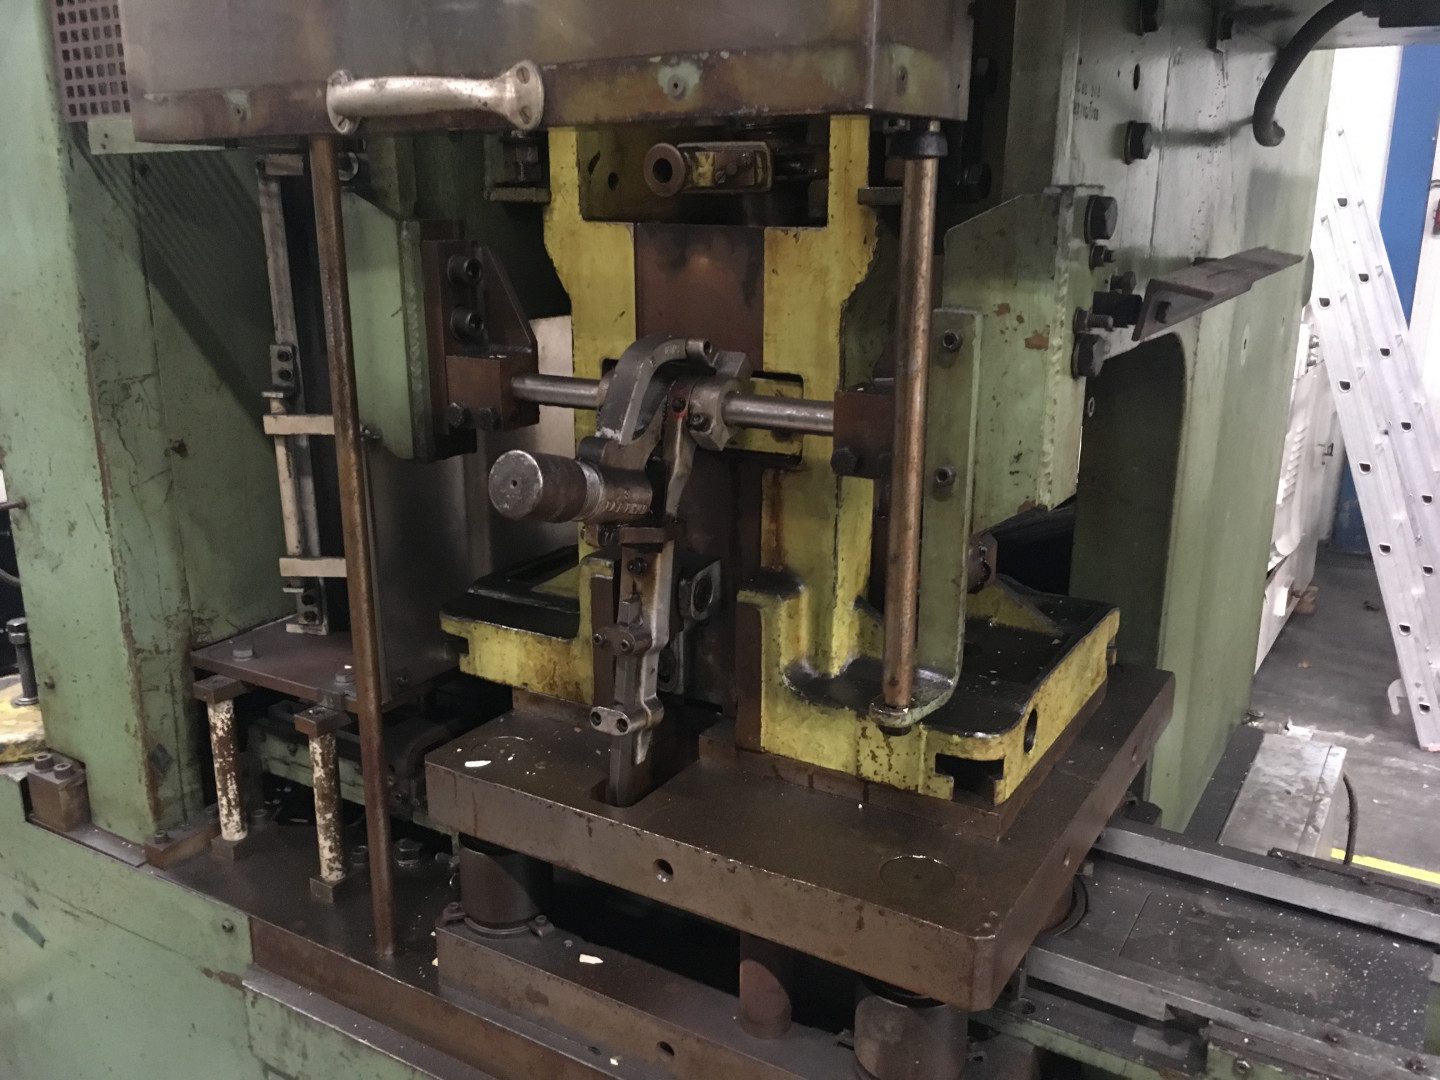 Schuler C-63-315 forming press